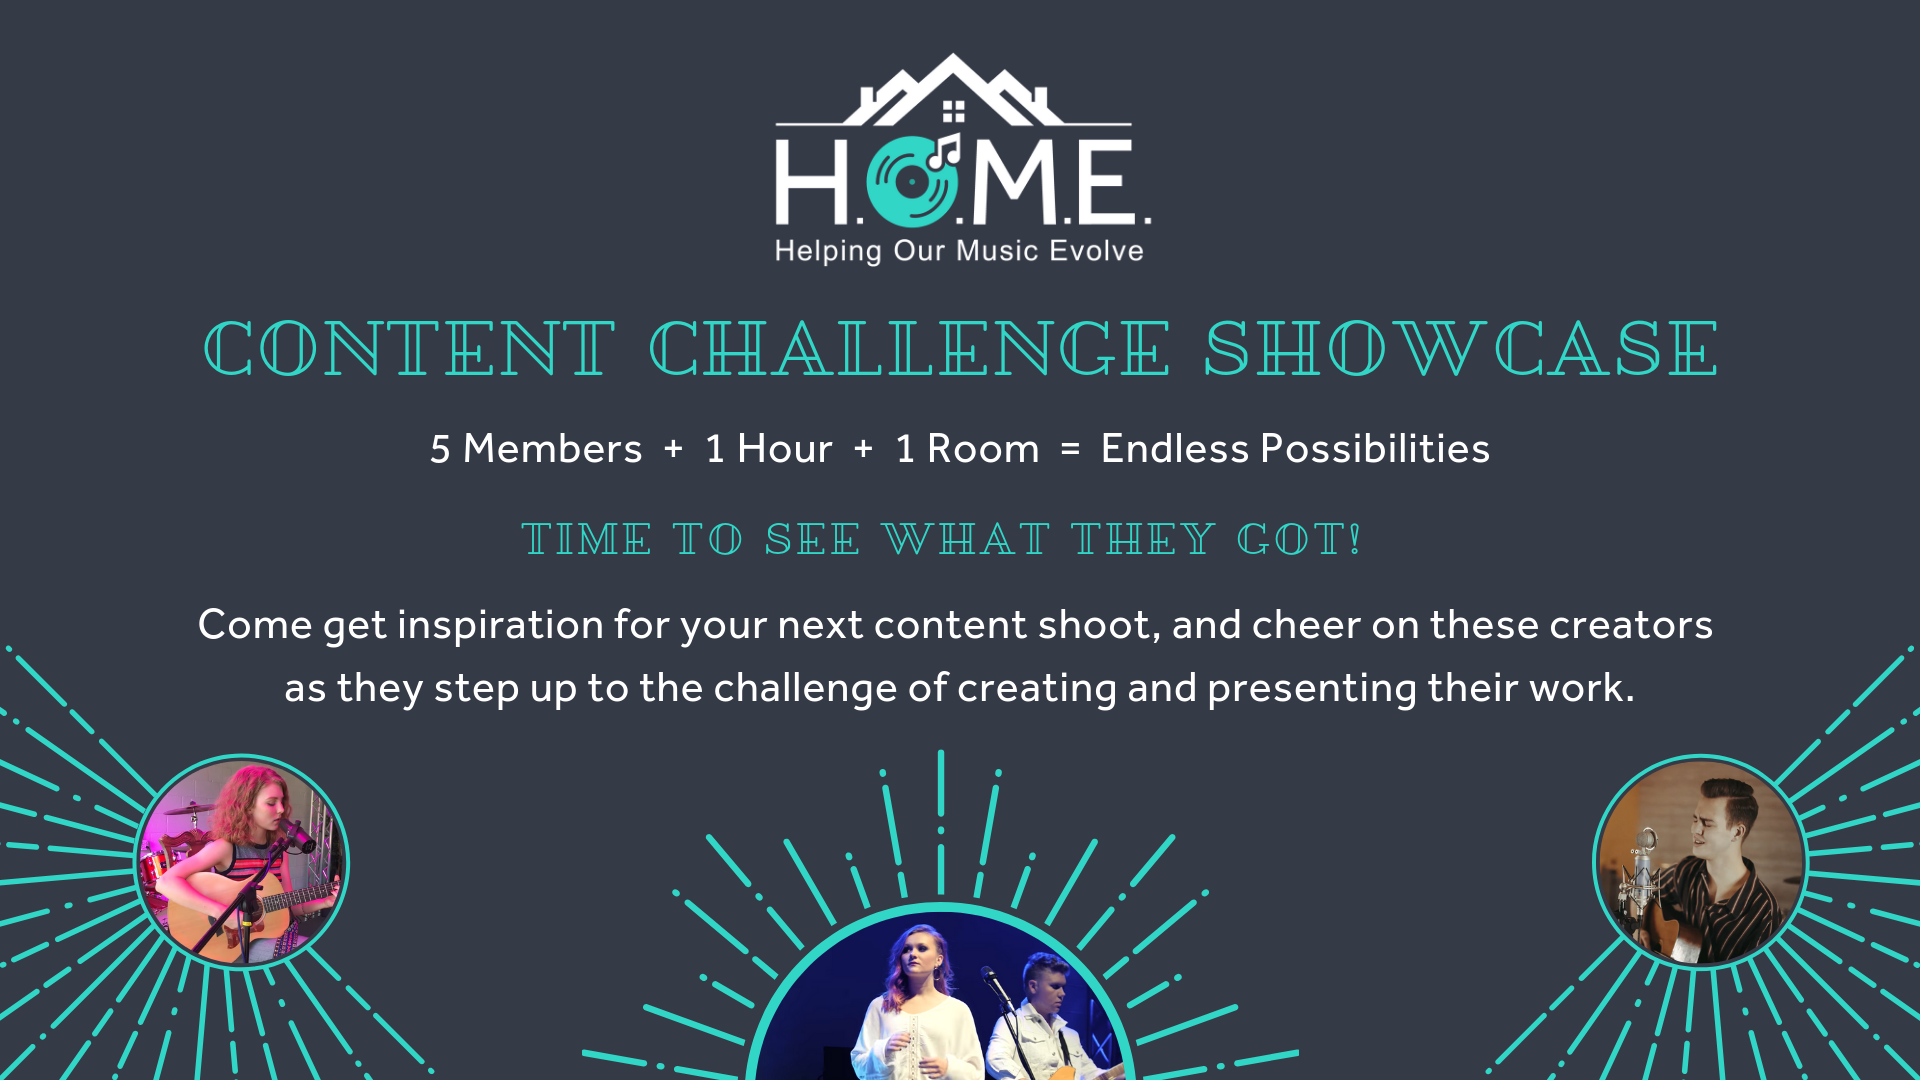 HOME Content Challenge Showcase.png